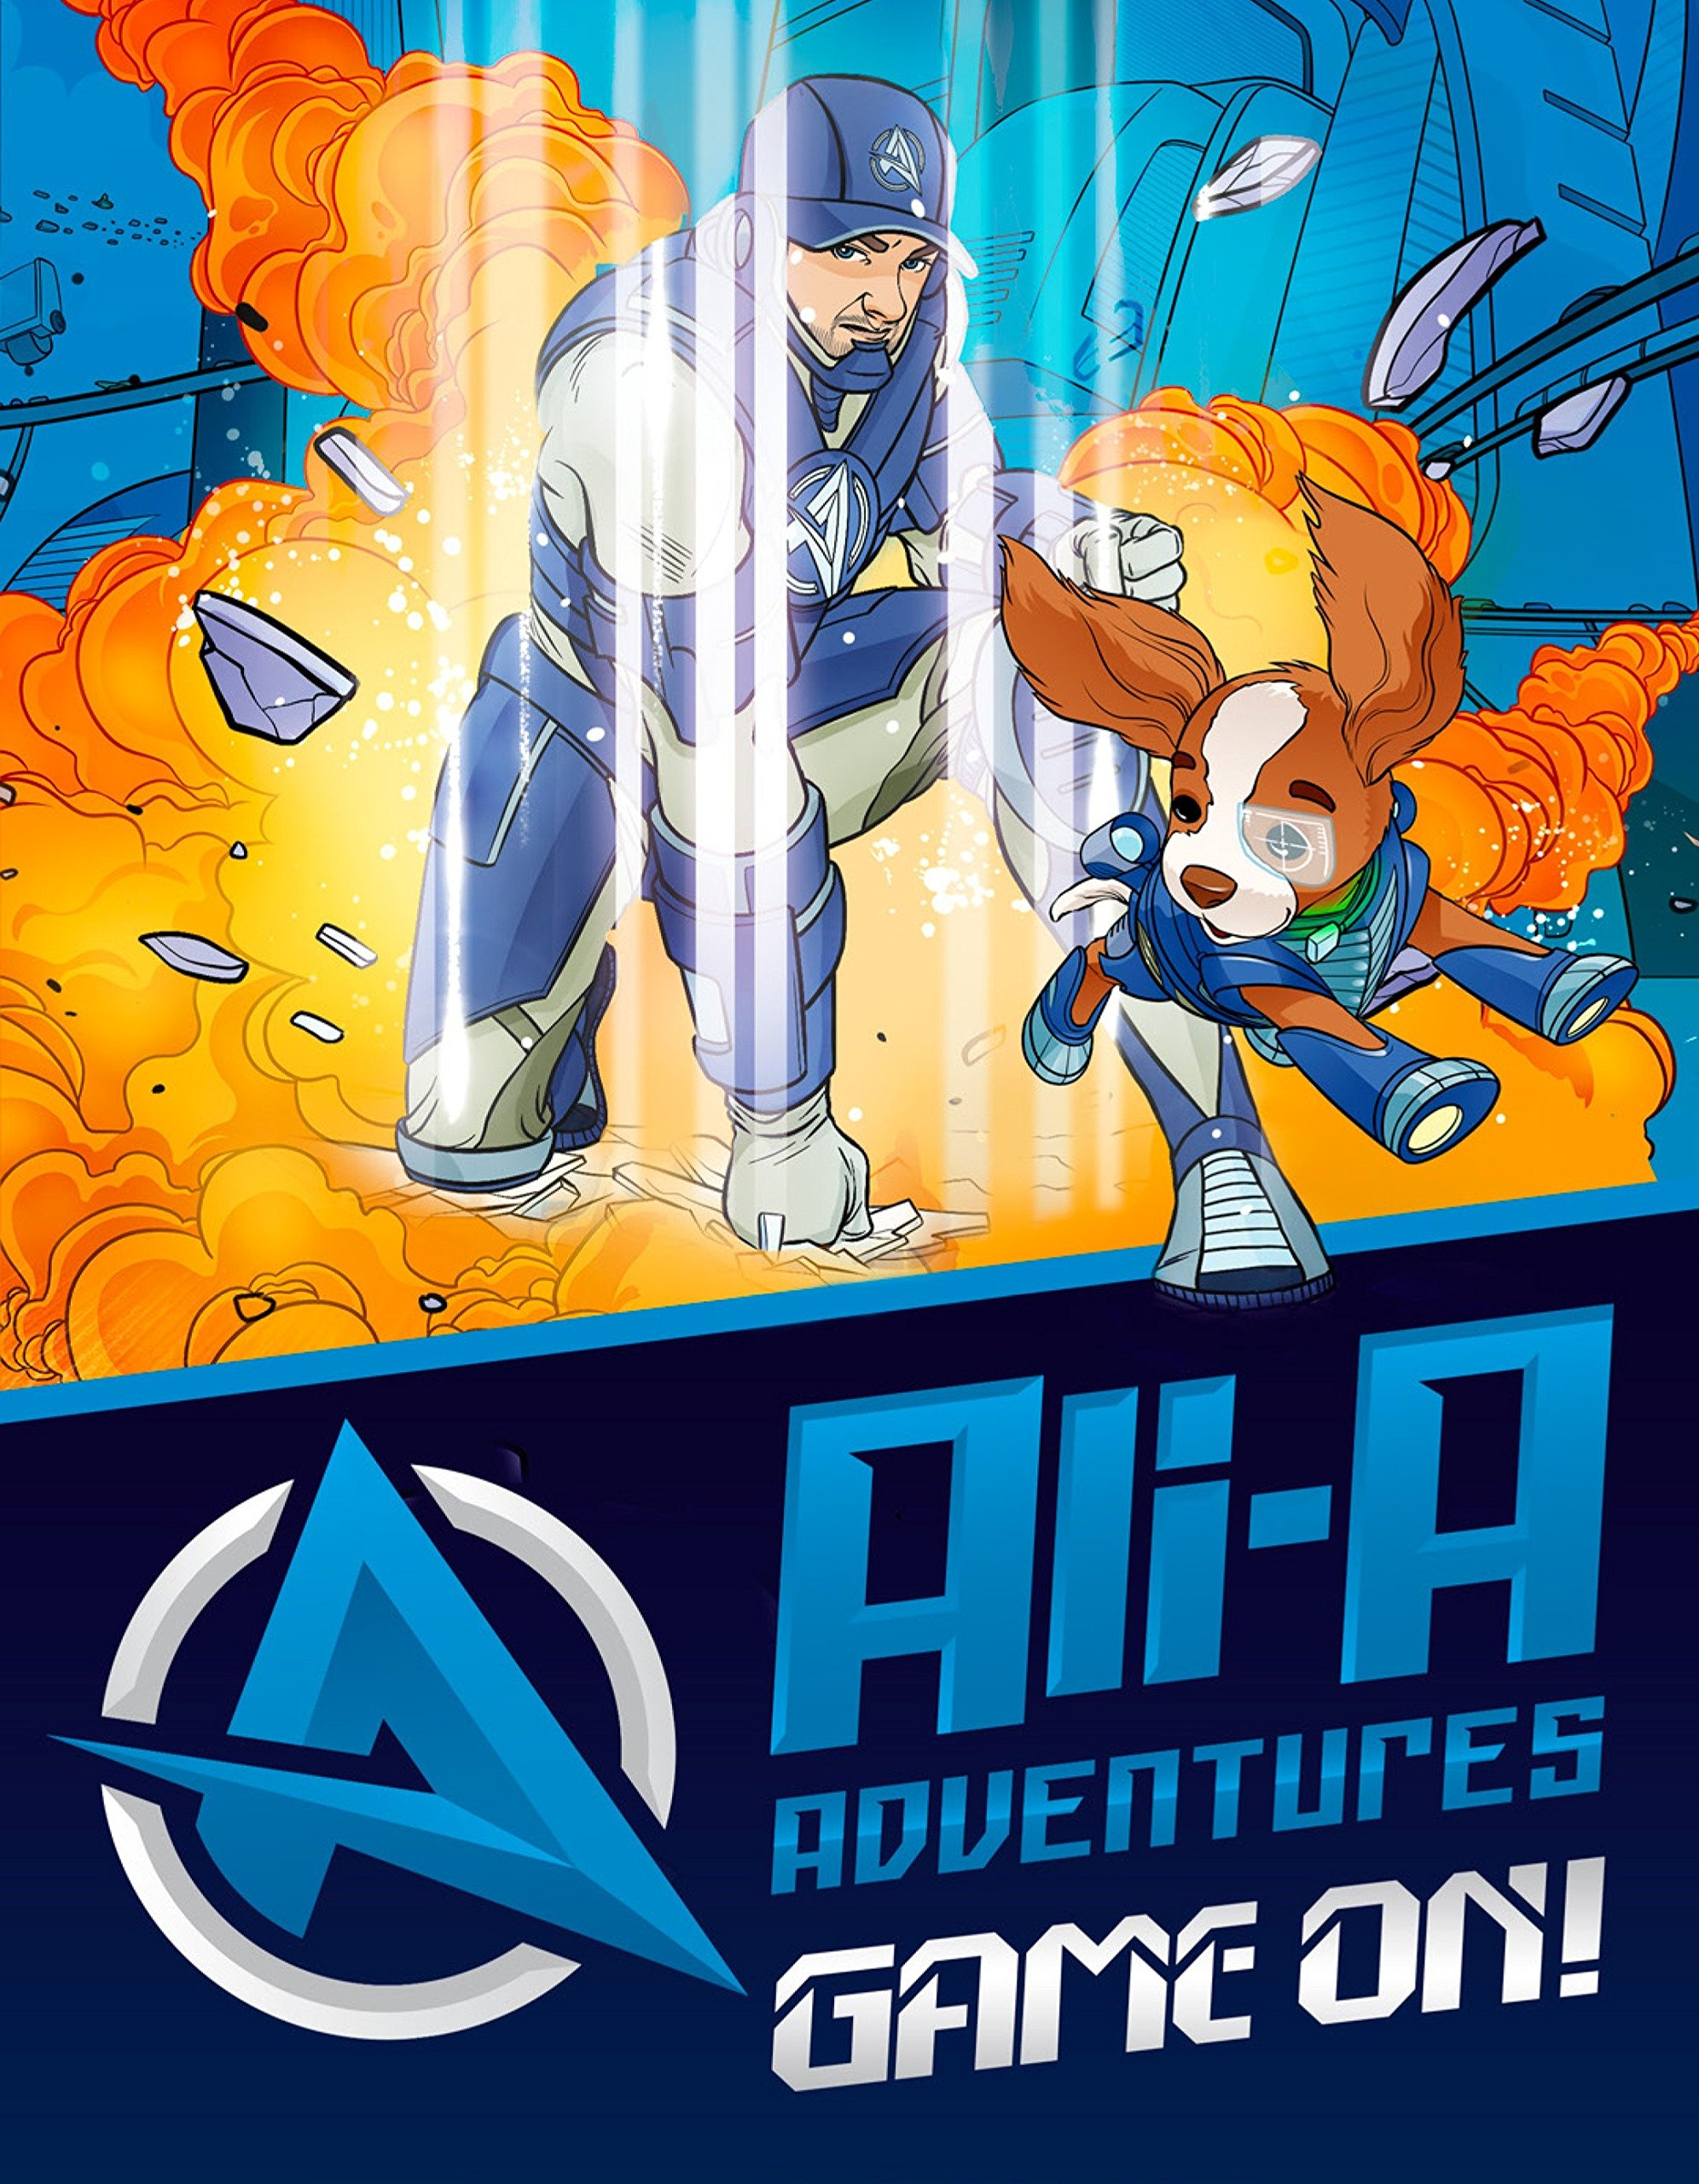 Amazon.com: Ali-A Adventures: Game On! The Graphic Novel ...